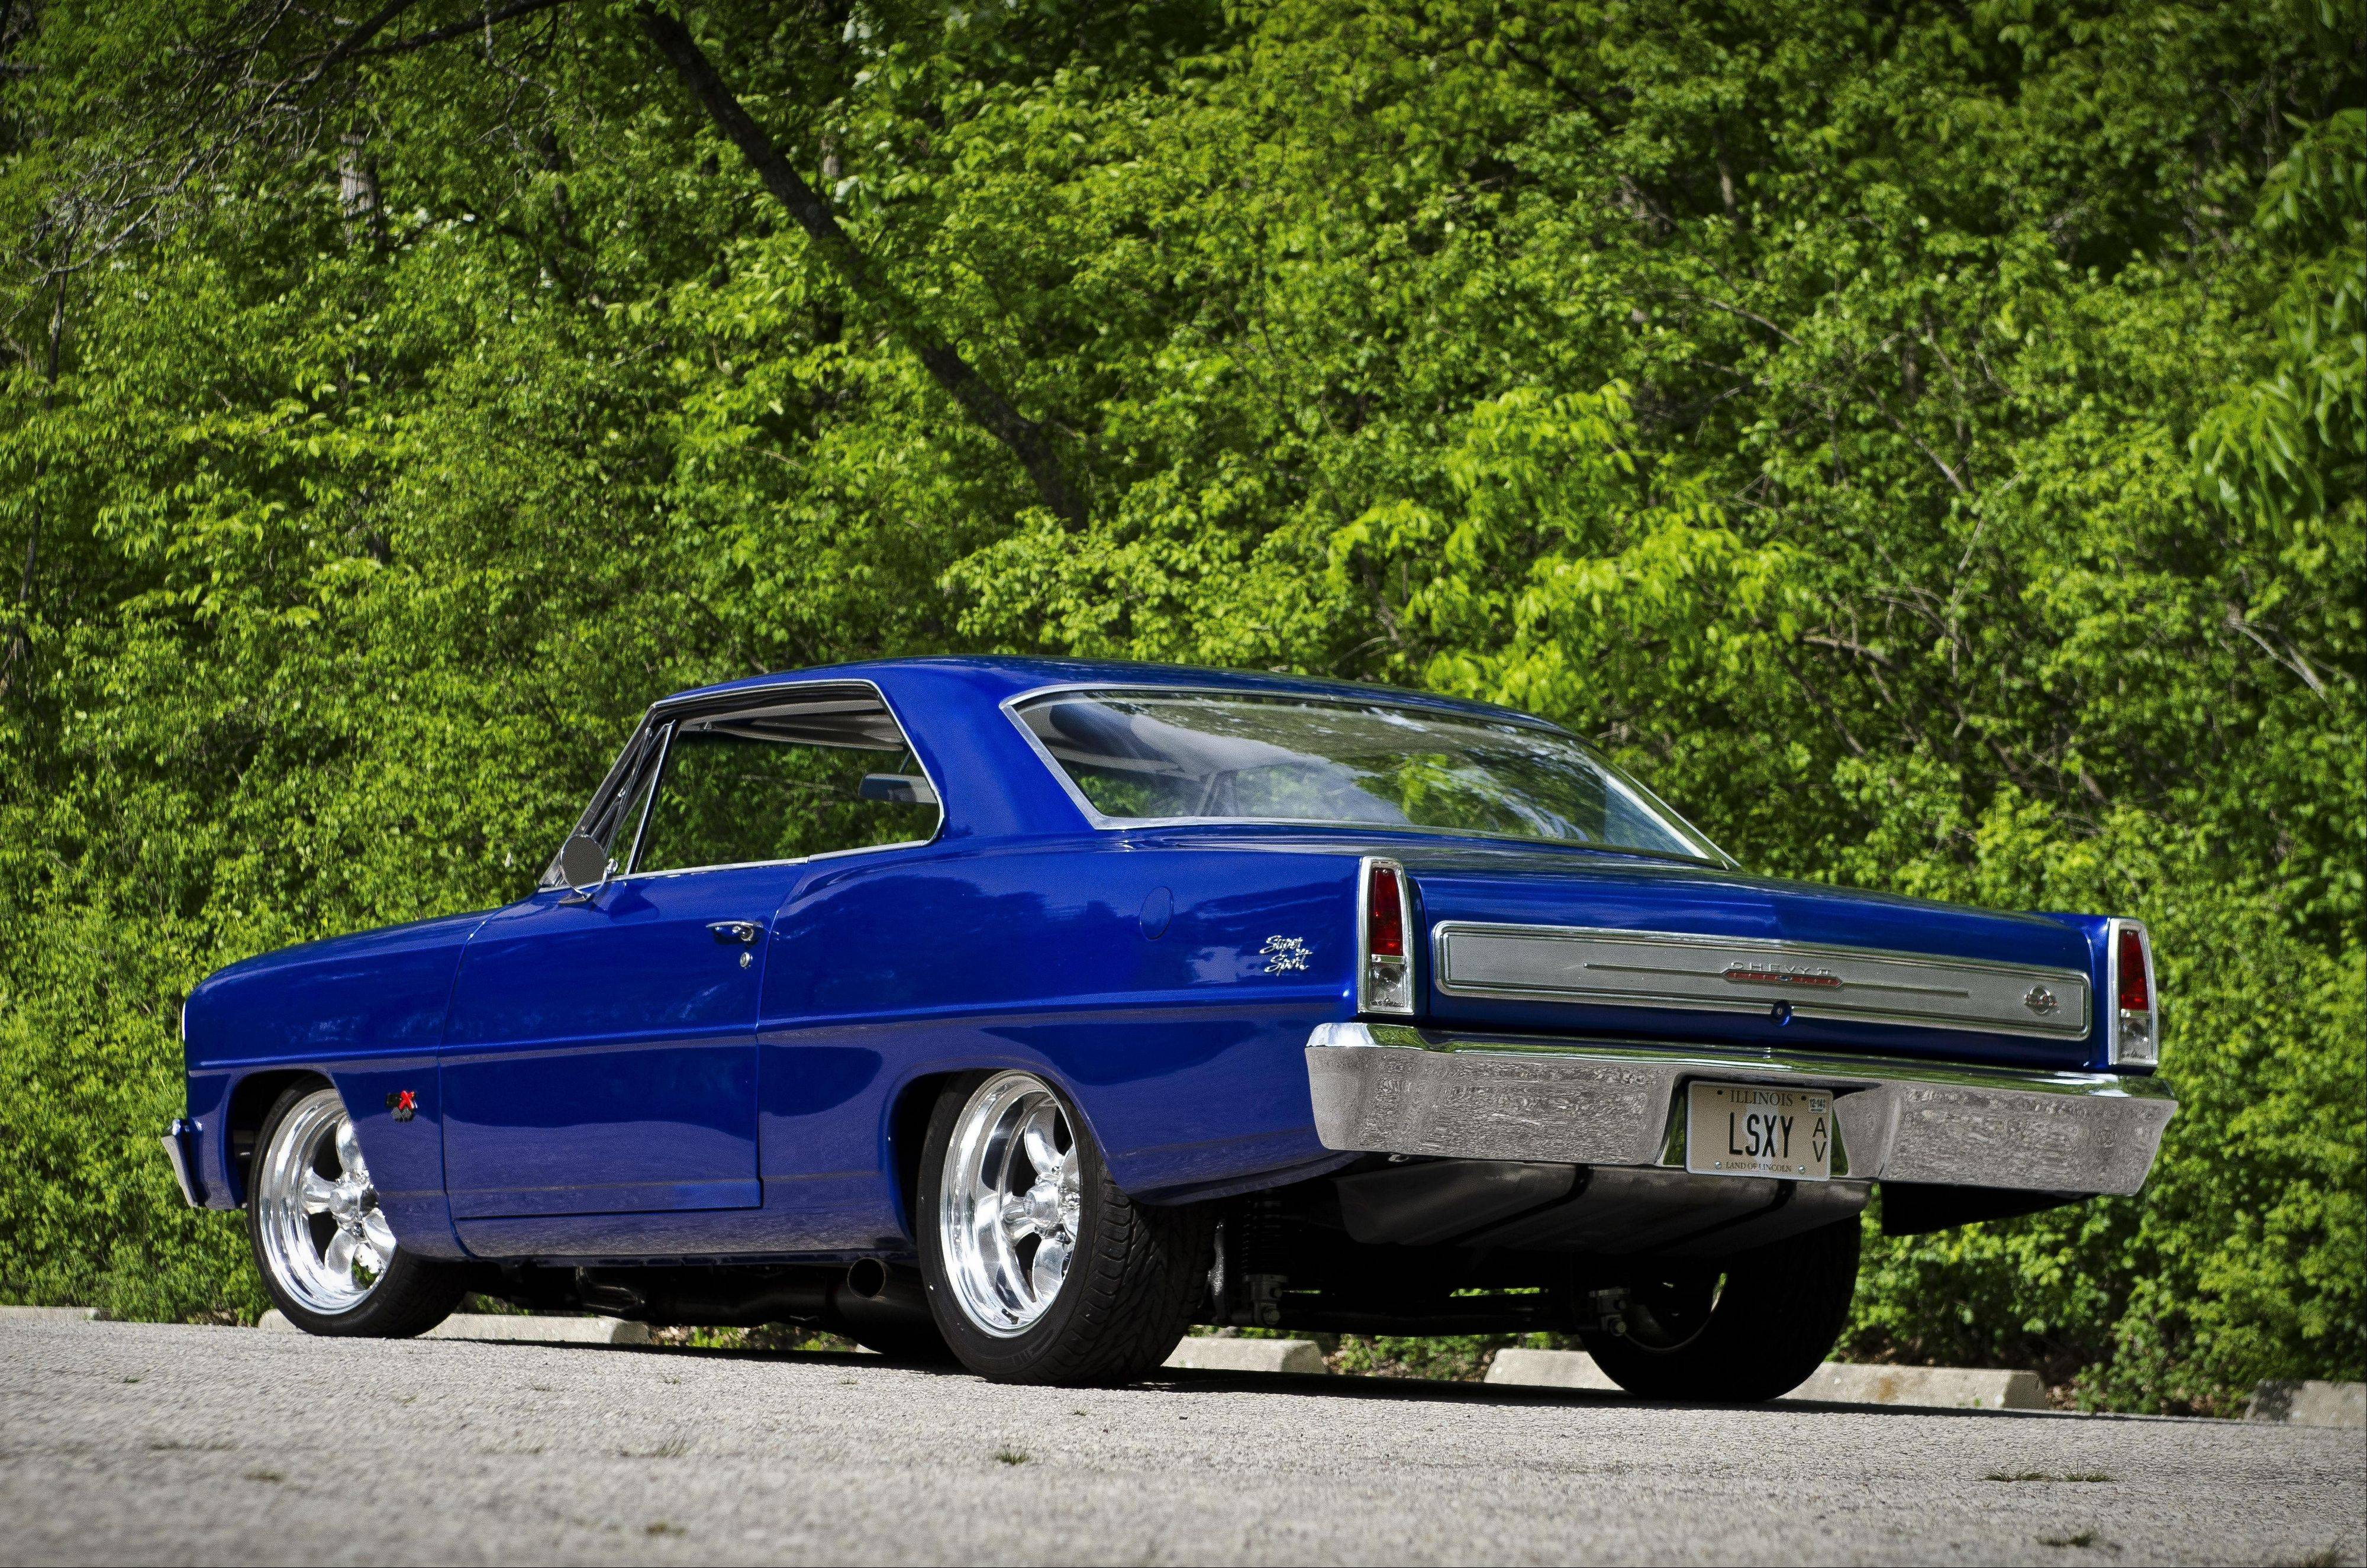 A new V-8 engine and beefed-up suspension make the Nova a high-performance car.